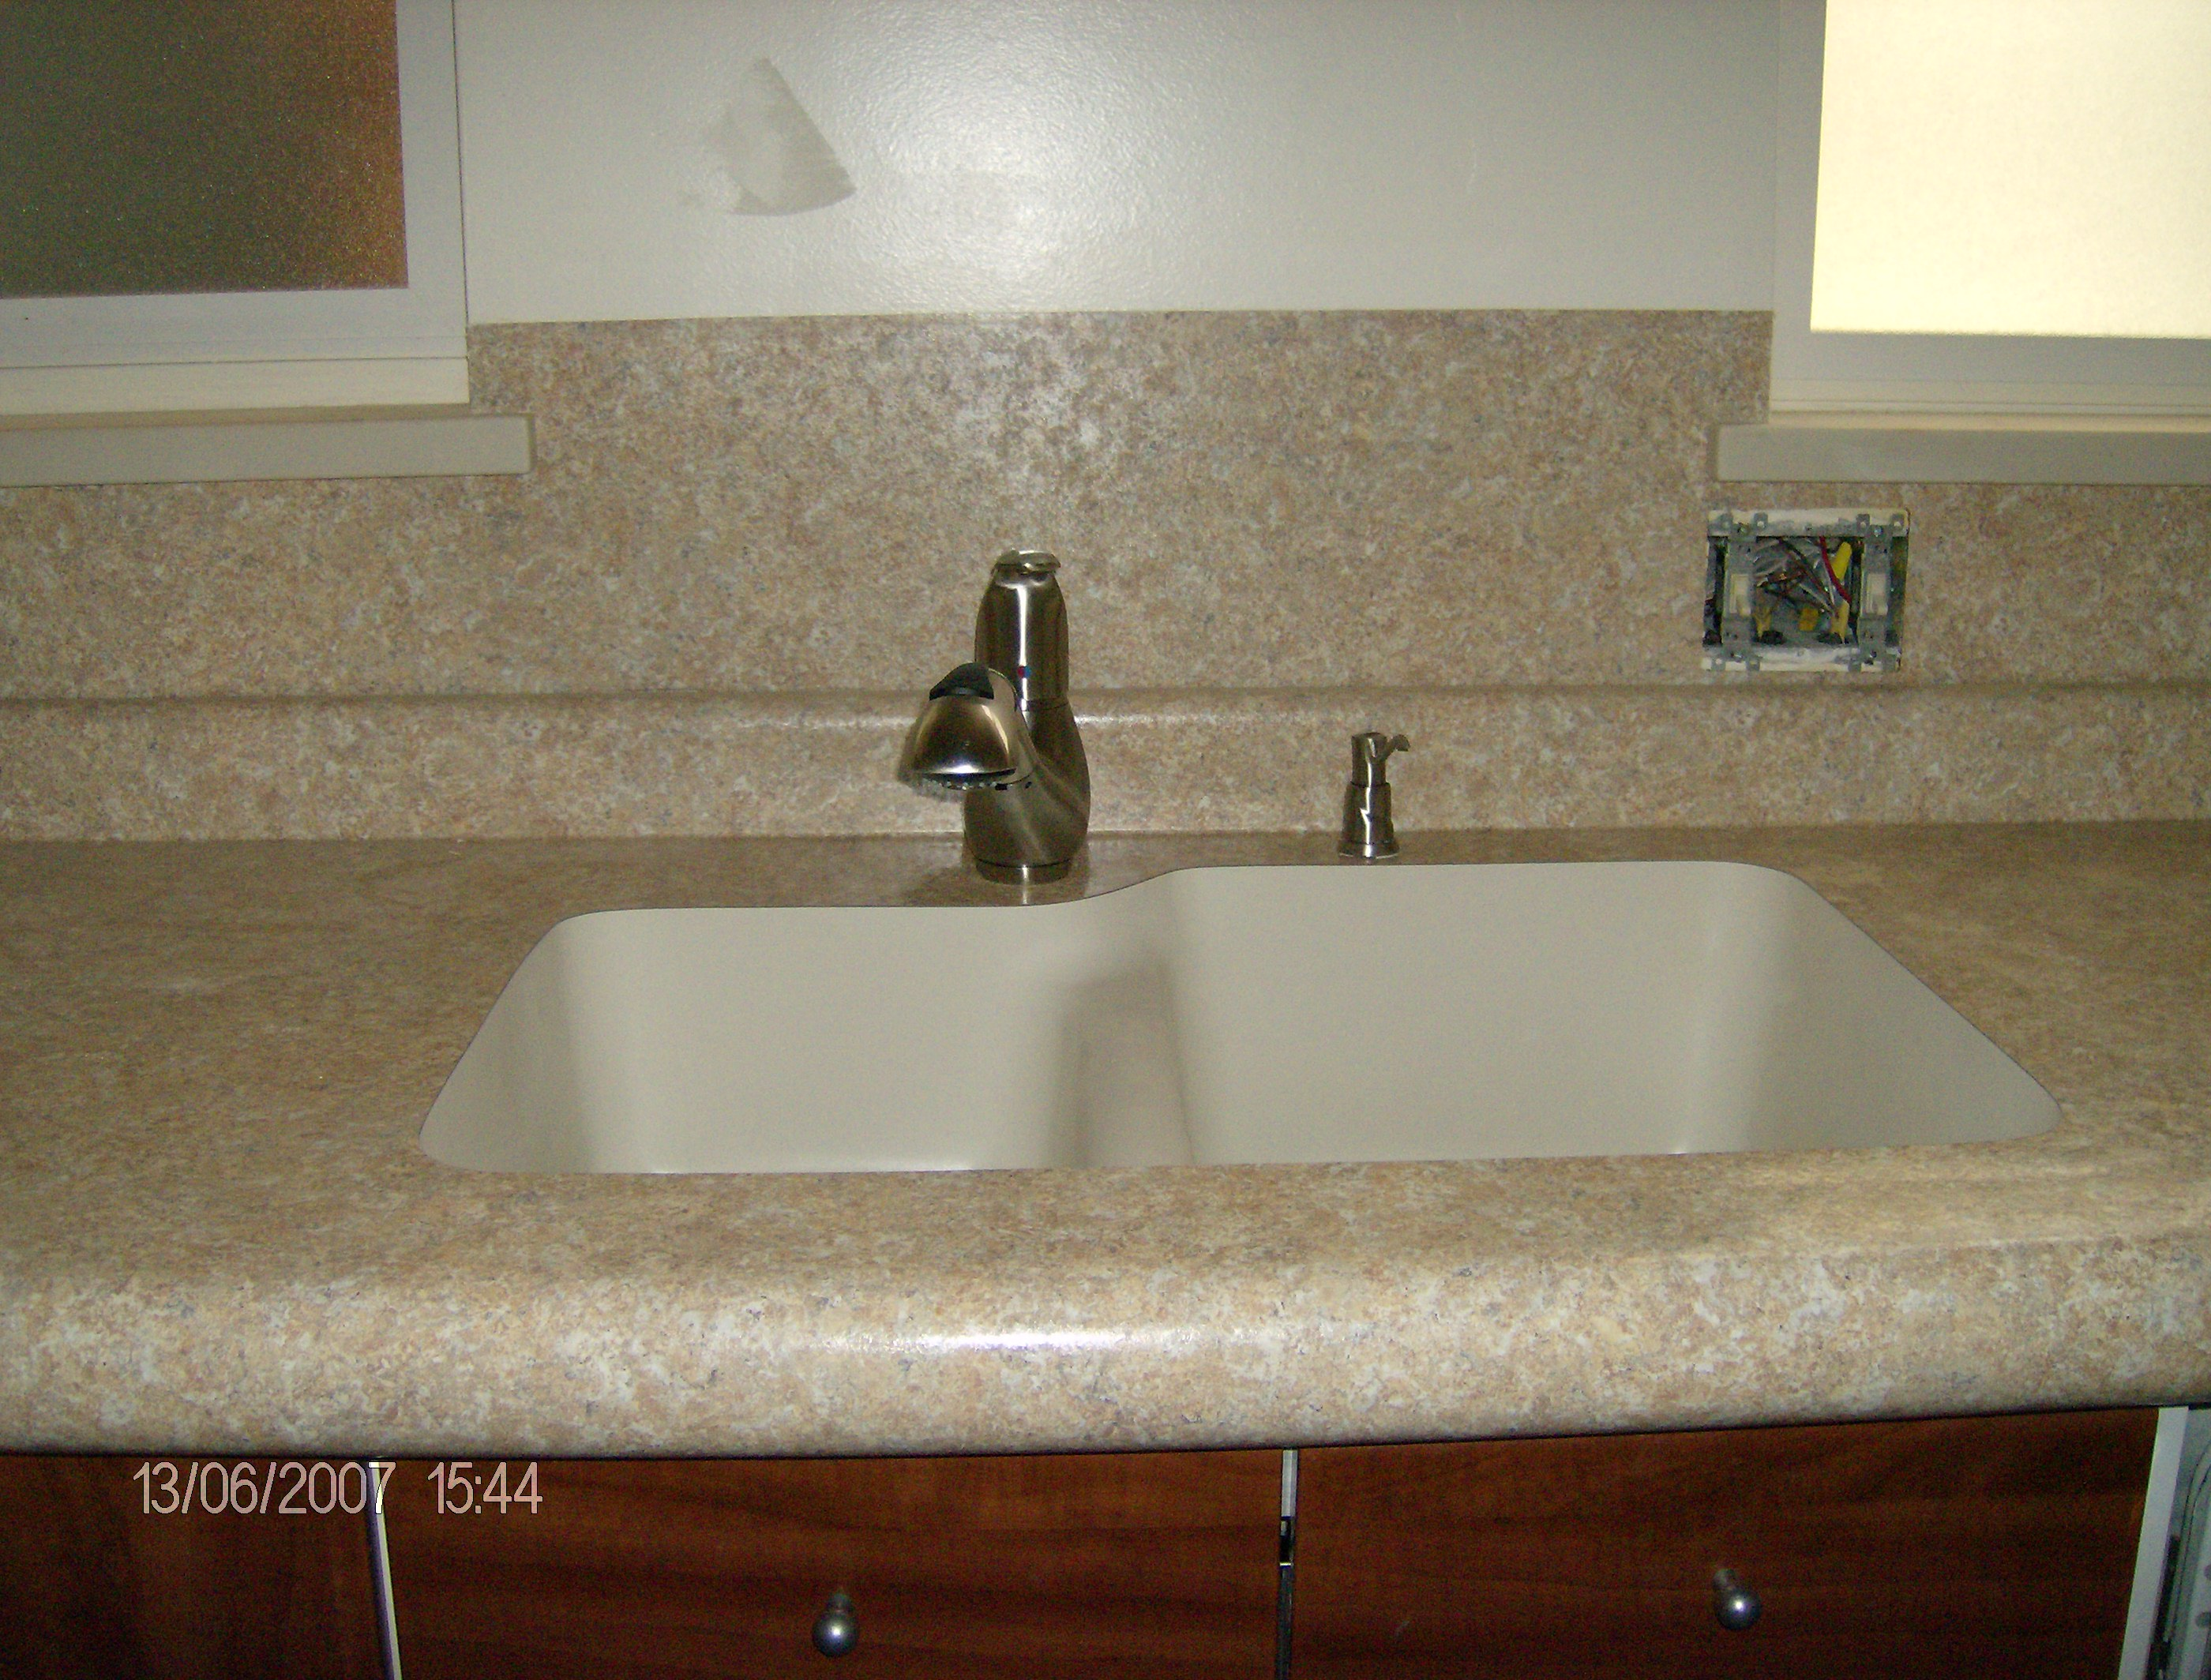 Unfinished Kitchen Cabinets Tampa Corian Countertops And Undermount Sinks Sinks Ideas